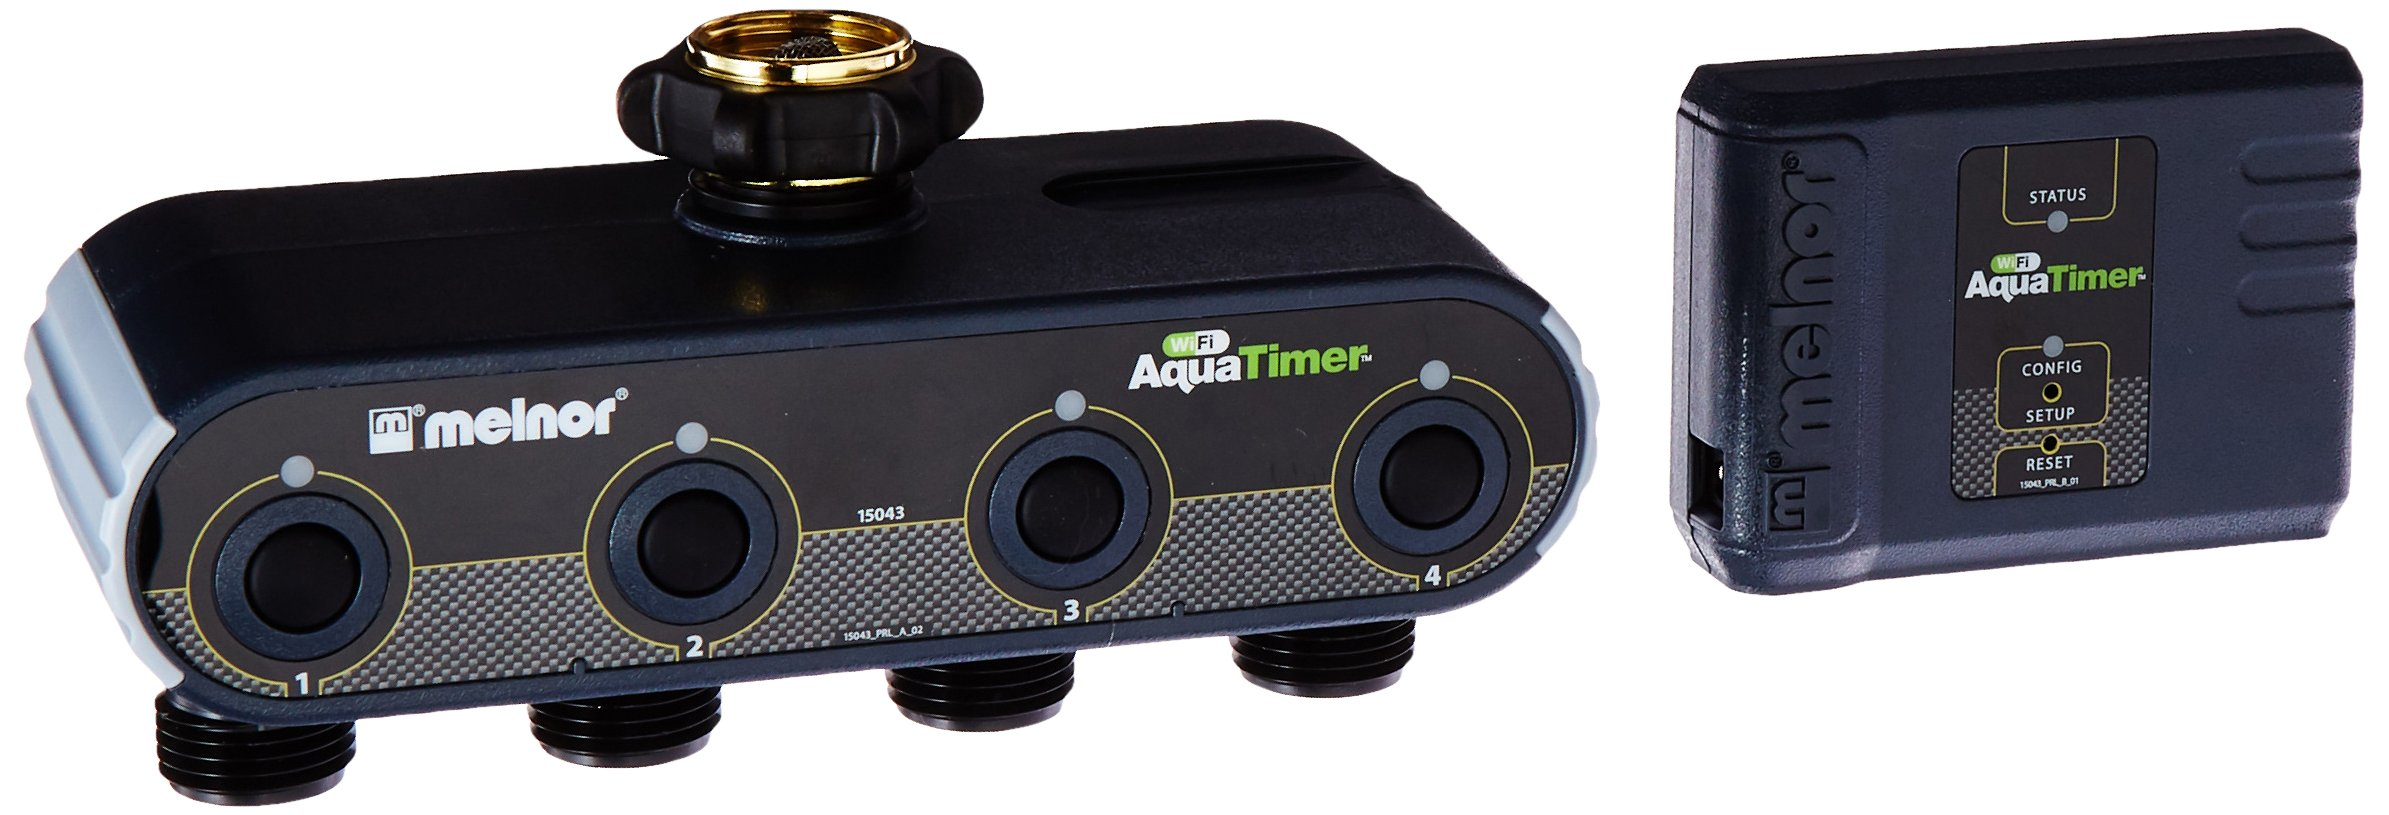 Wifi Aquatimer by Melnor